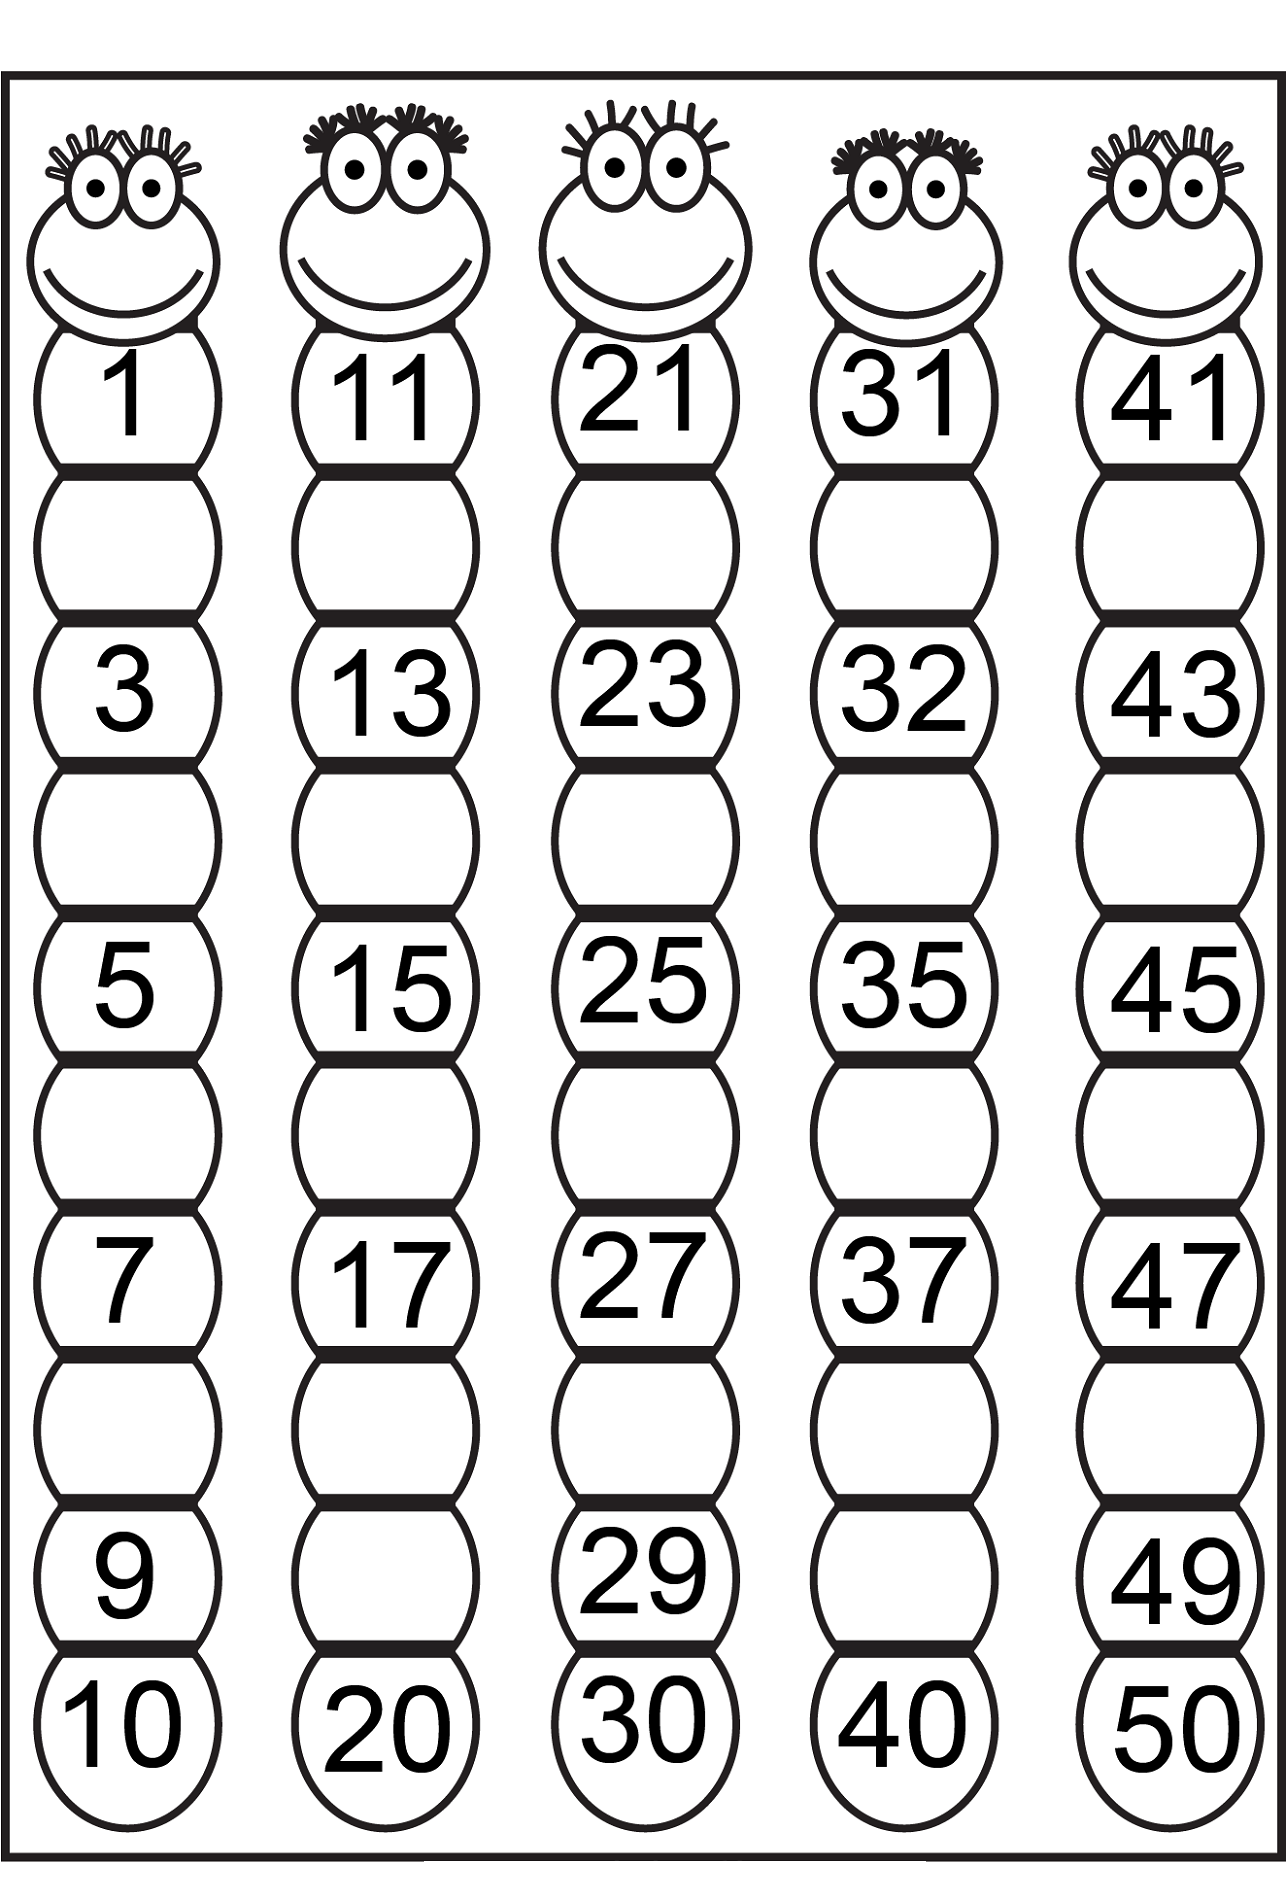 number chart 1-50 for math